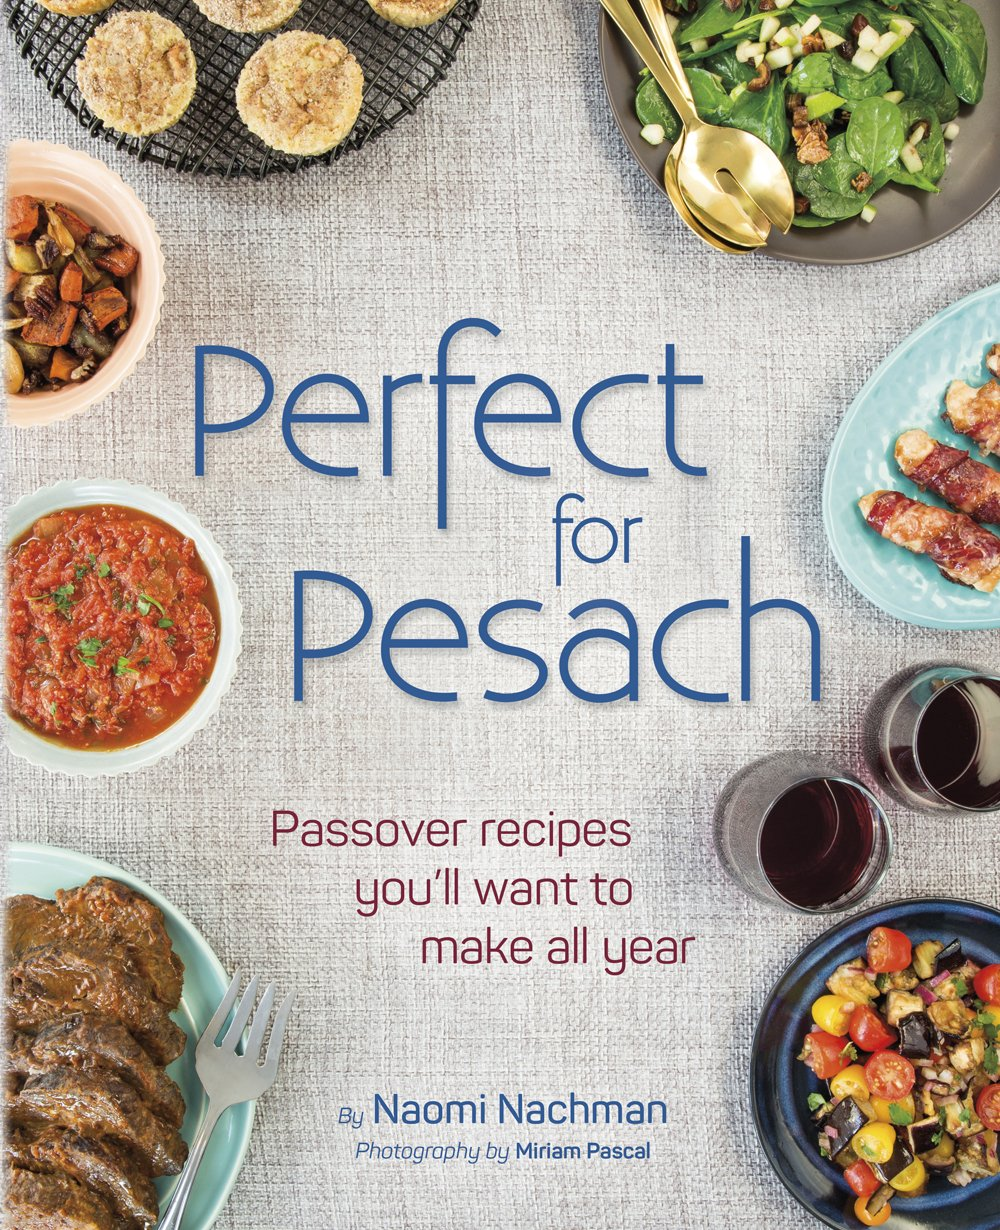 Perfect For Pesach Passover Recipes You Ll Want To Make All Year Naomi Nachman Miriam Pascal 9781422618677 Amazon Com Books